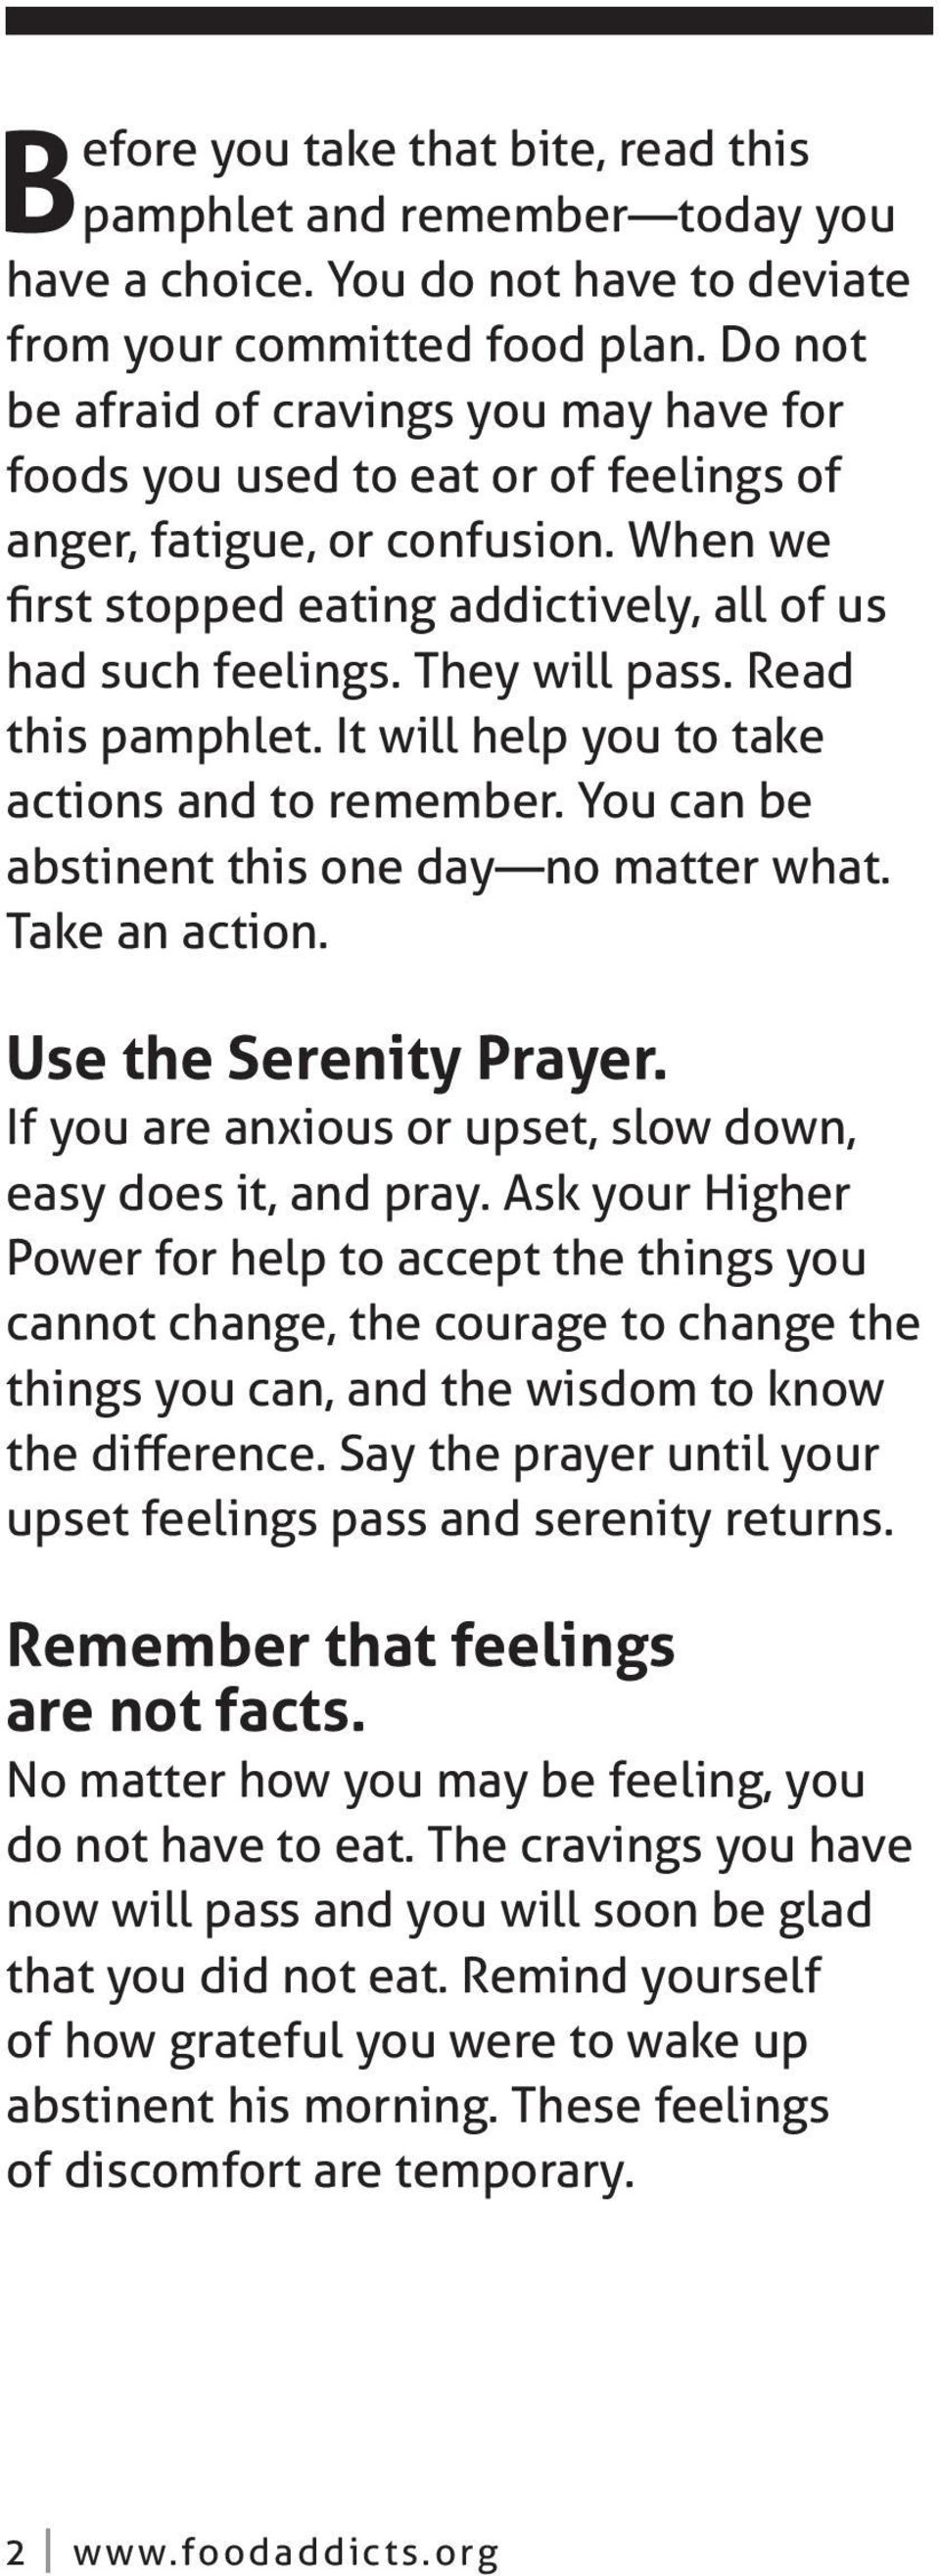 They will pass. Read this pamphlet. It will help you to take actions and to remember. You can be abstinent this one day no matter what. Take an action. Use the Serenity Prayer.